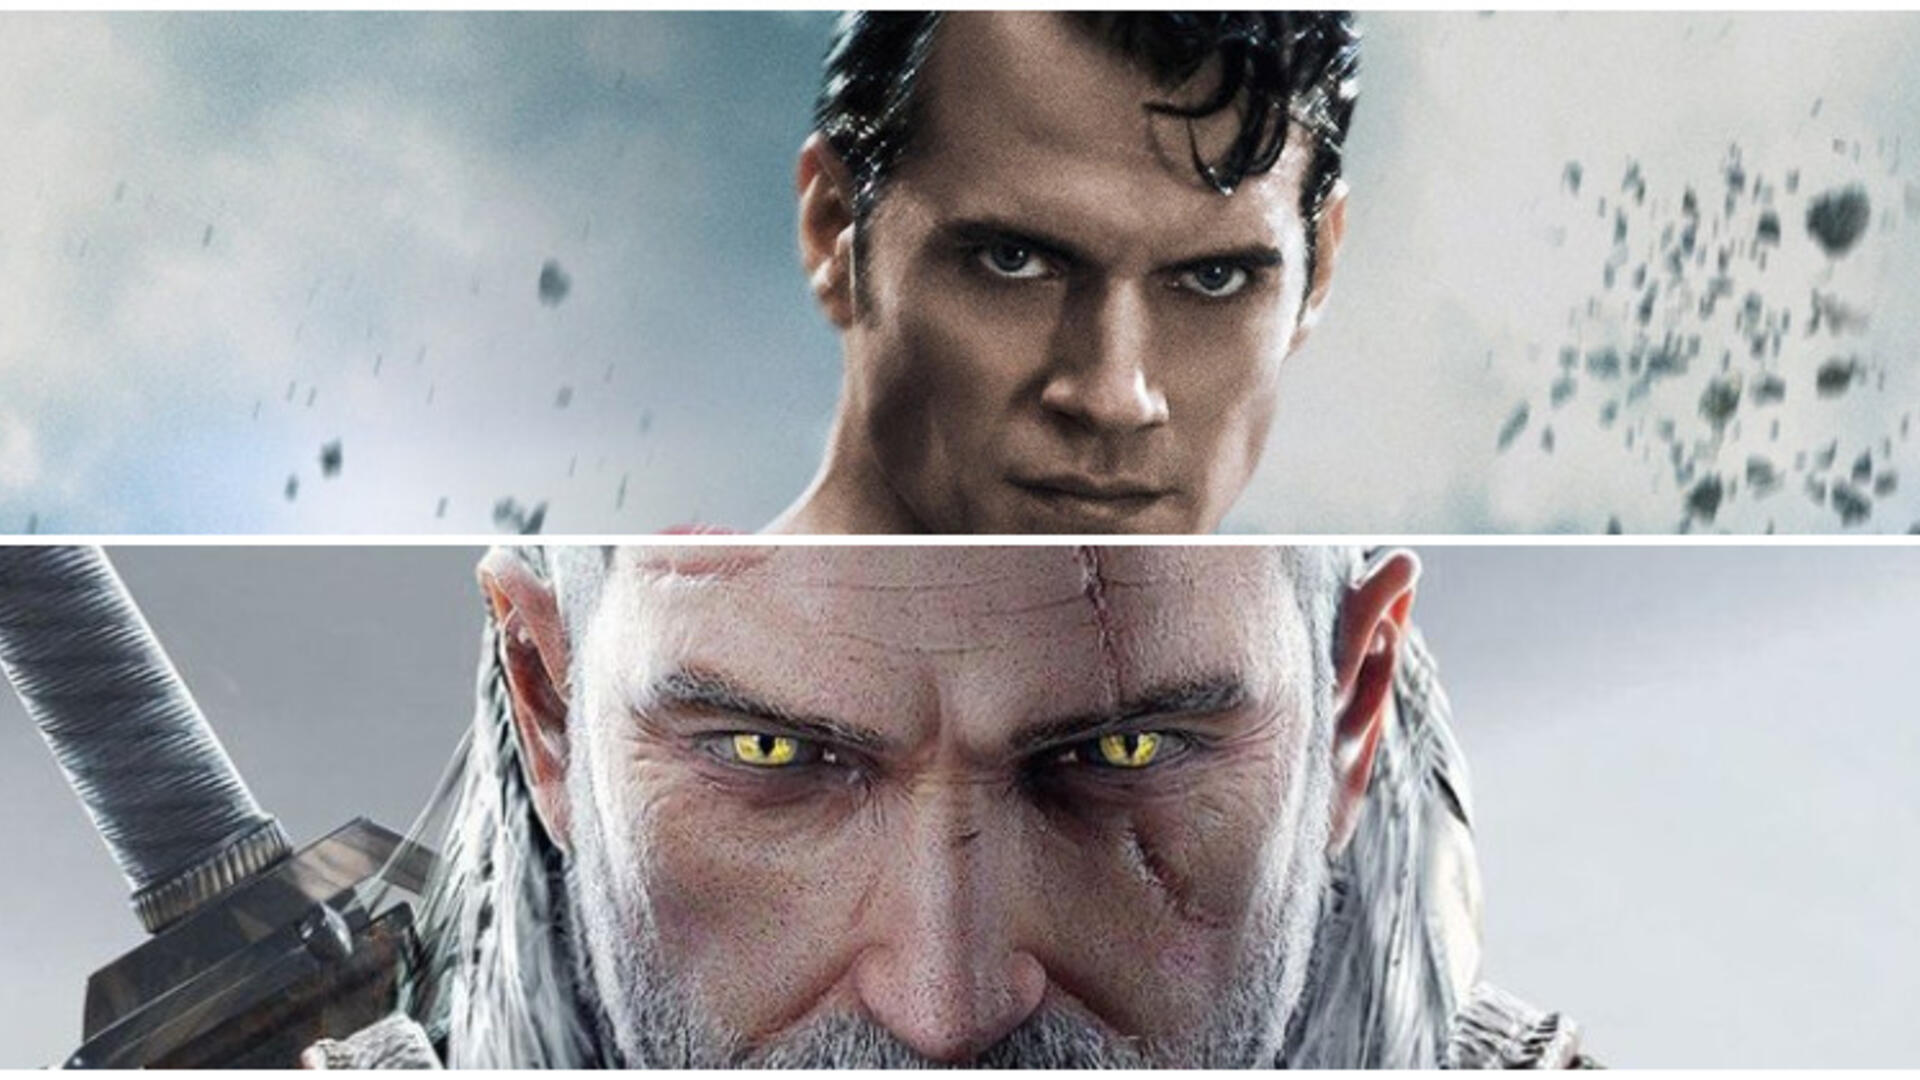 Superman Actor Henry Cavill Would Like to Play Geralt in Netflix's Witcher Show